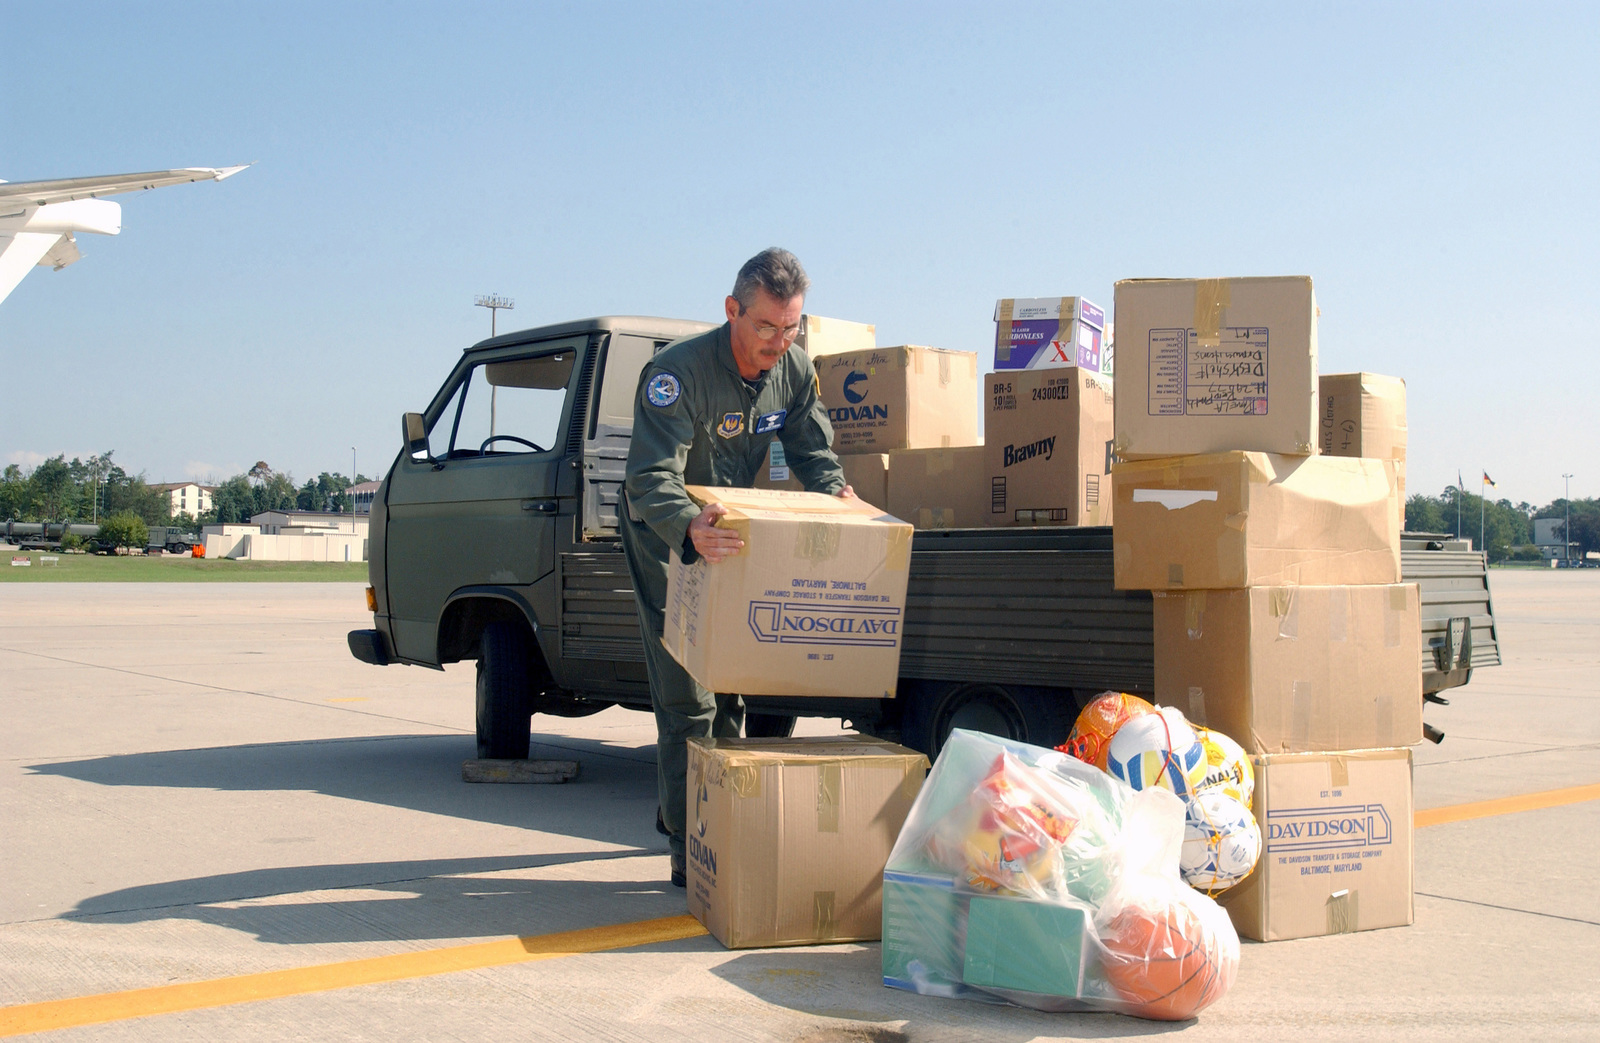 US Air Force (USAF) MASTER Sergeant (MSGT) Johnny MacMahan, a Radio Operator from the 76th Airlift Squadron (AS), 86th Airlift Wing (AW), Ramstein Air Base (AB), Germany, loads boxes of school supplies, food and clothing donated by Kaiserslautern Military Families, destined for the country of Moldova